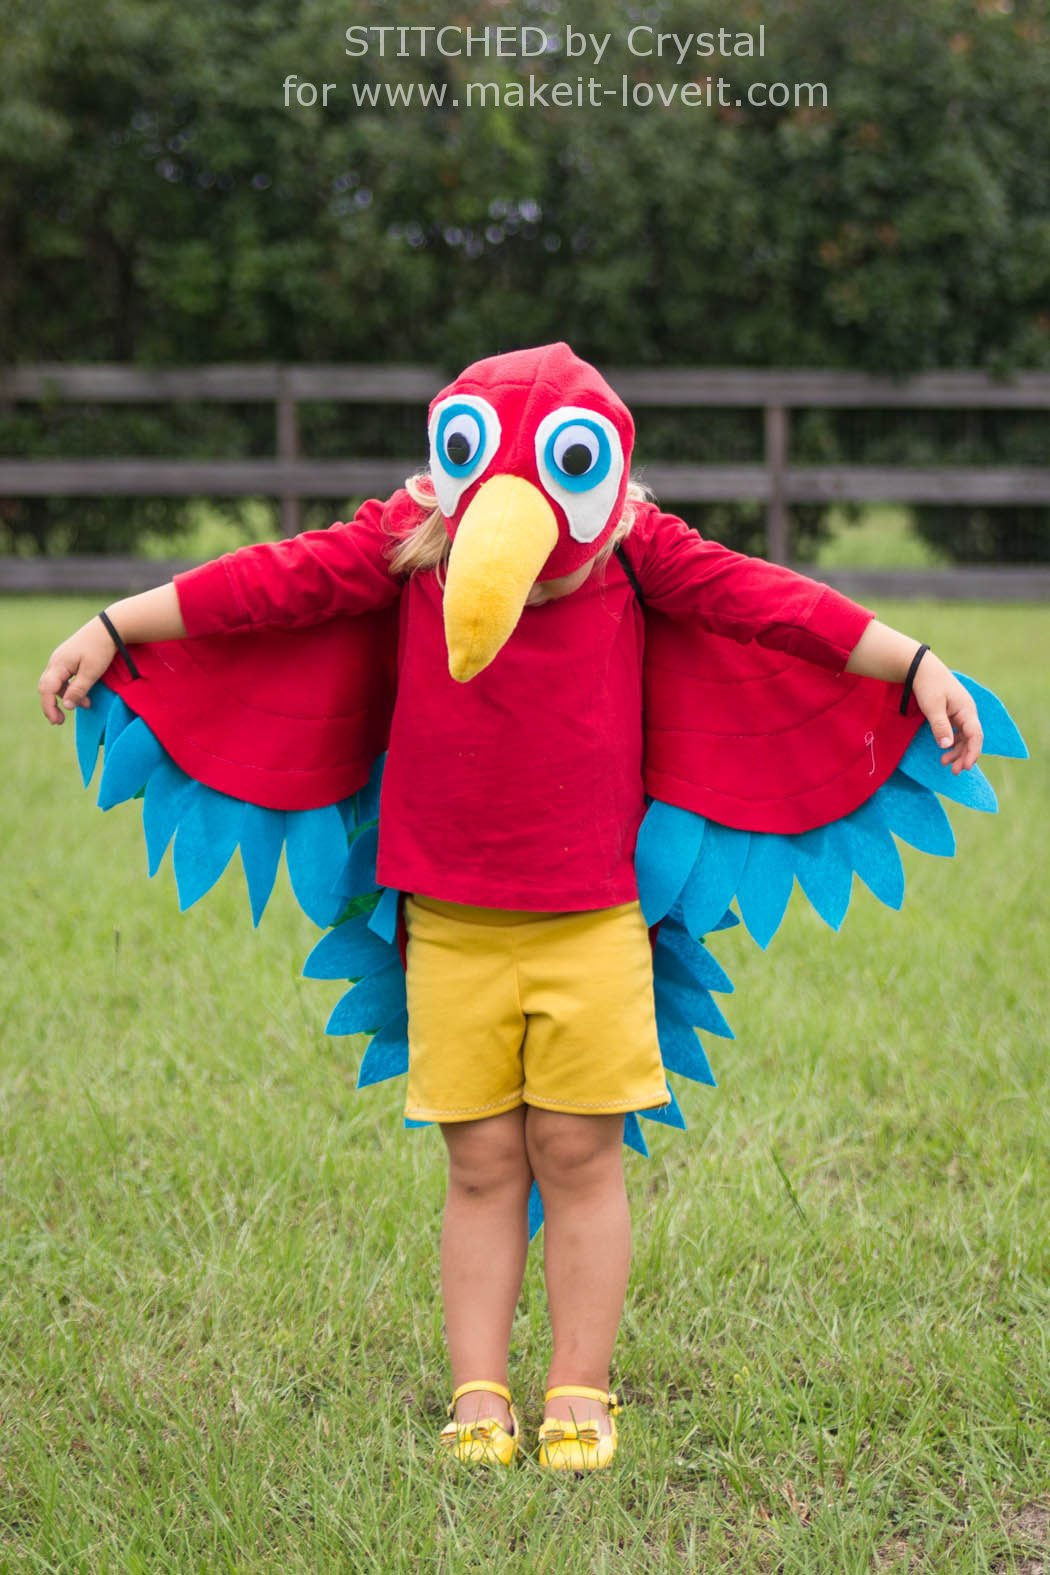 Sew an Easy Parrot Costume (perfect for Halloween or dress-up!) | via Make It and Love It